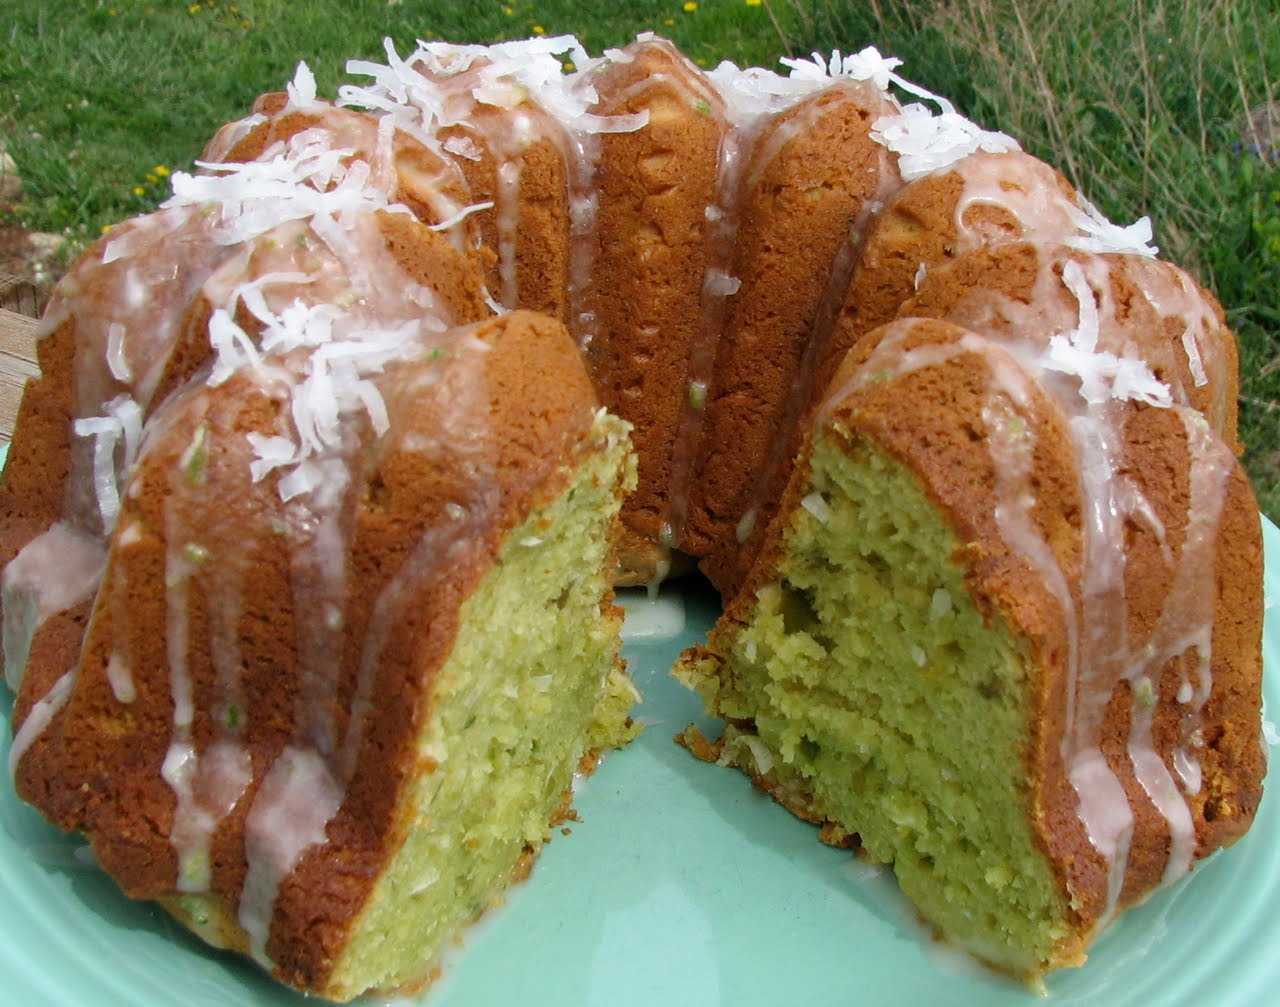 ... pound cake chamomile pound cake orange pound cake avocado pound cake